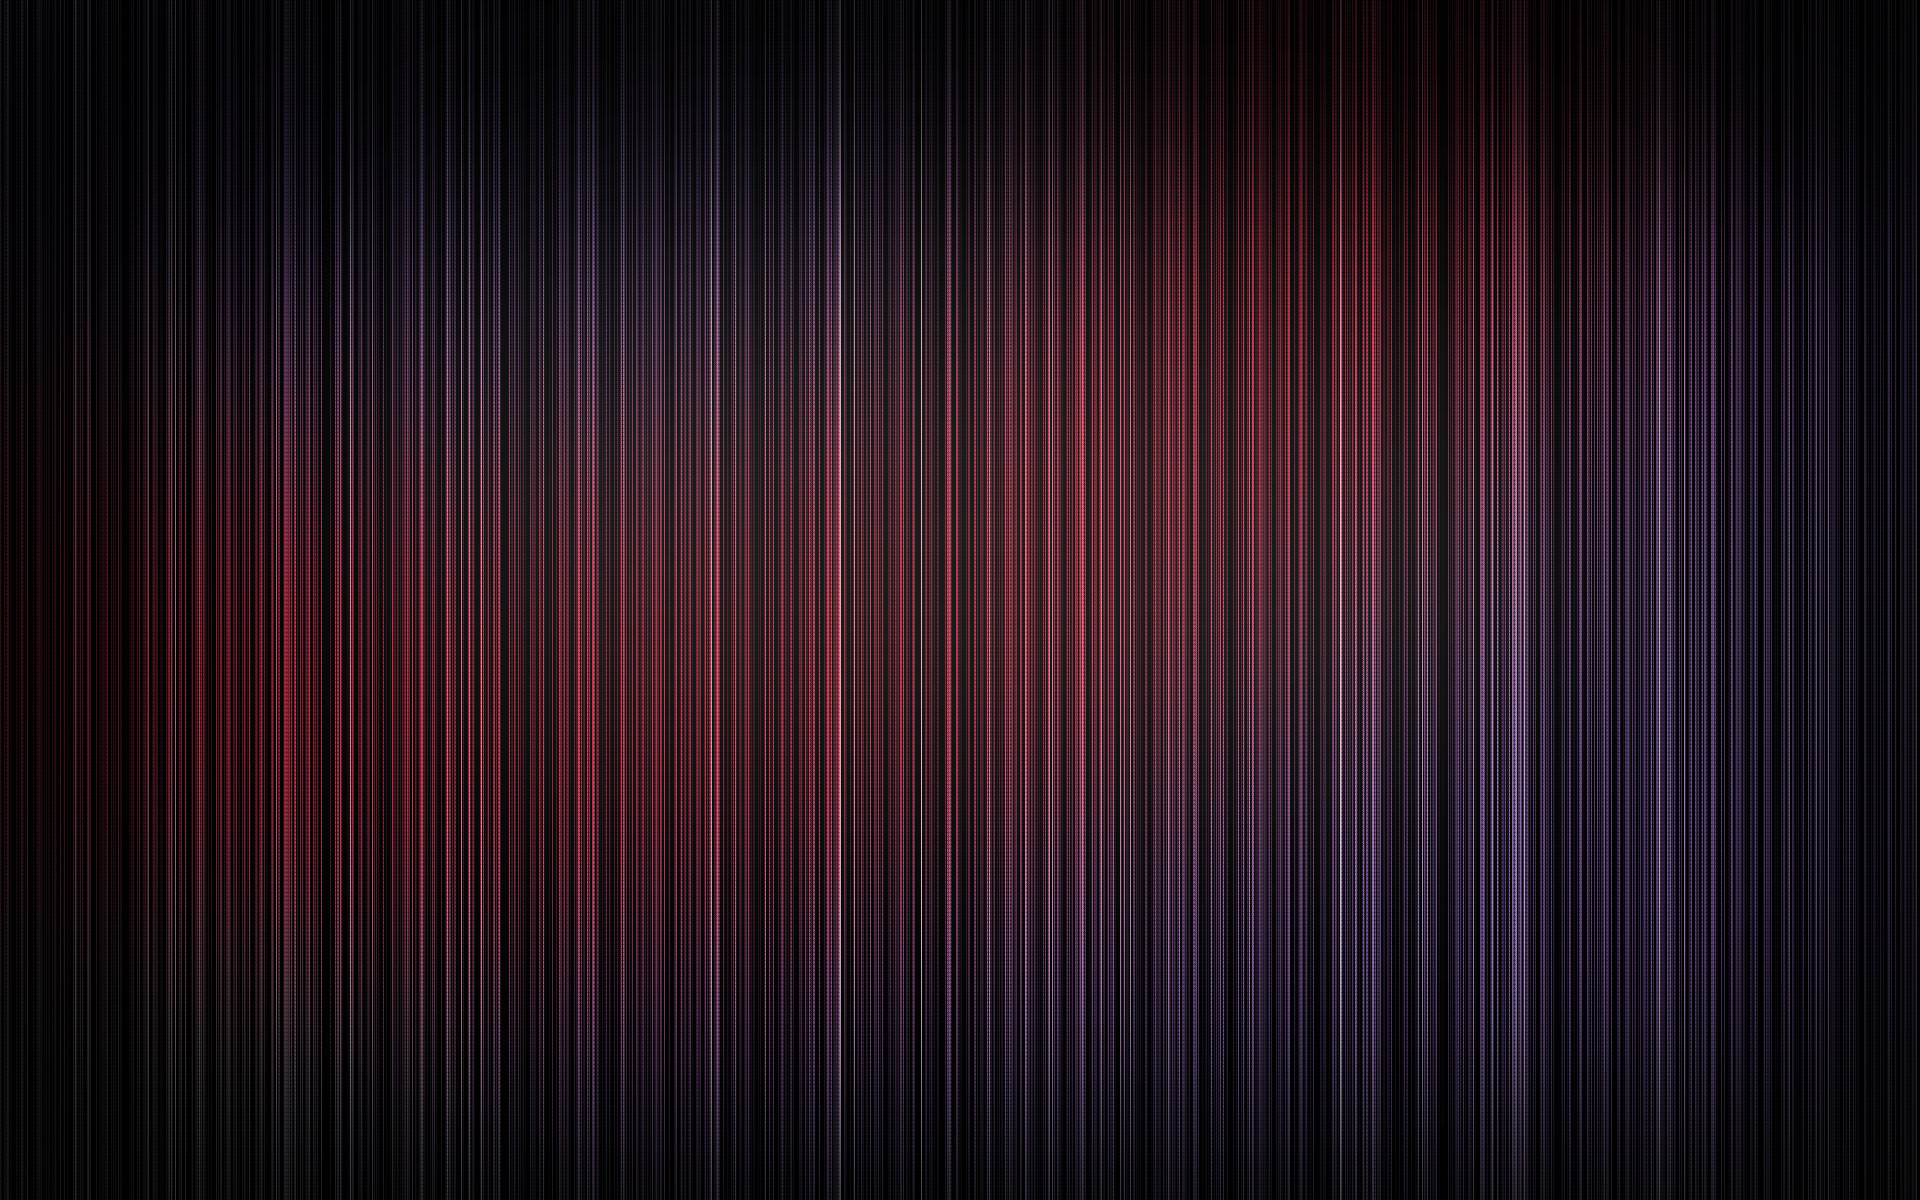 Res: 1920x1200, Abstract Backgrounds Backrounds Styles Media Art 2487838 Wallpaper wallpaper